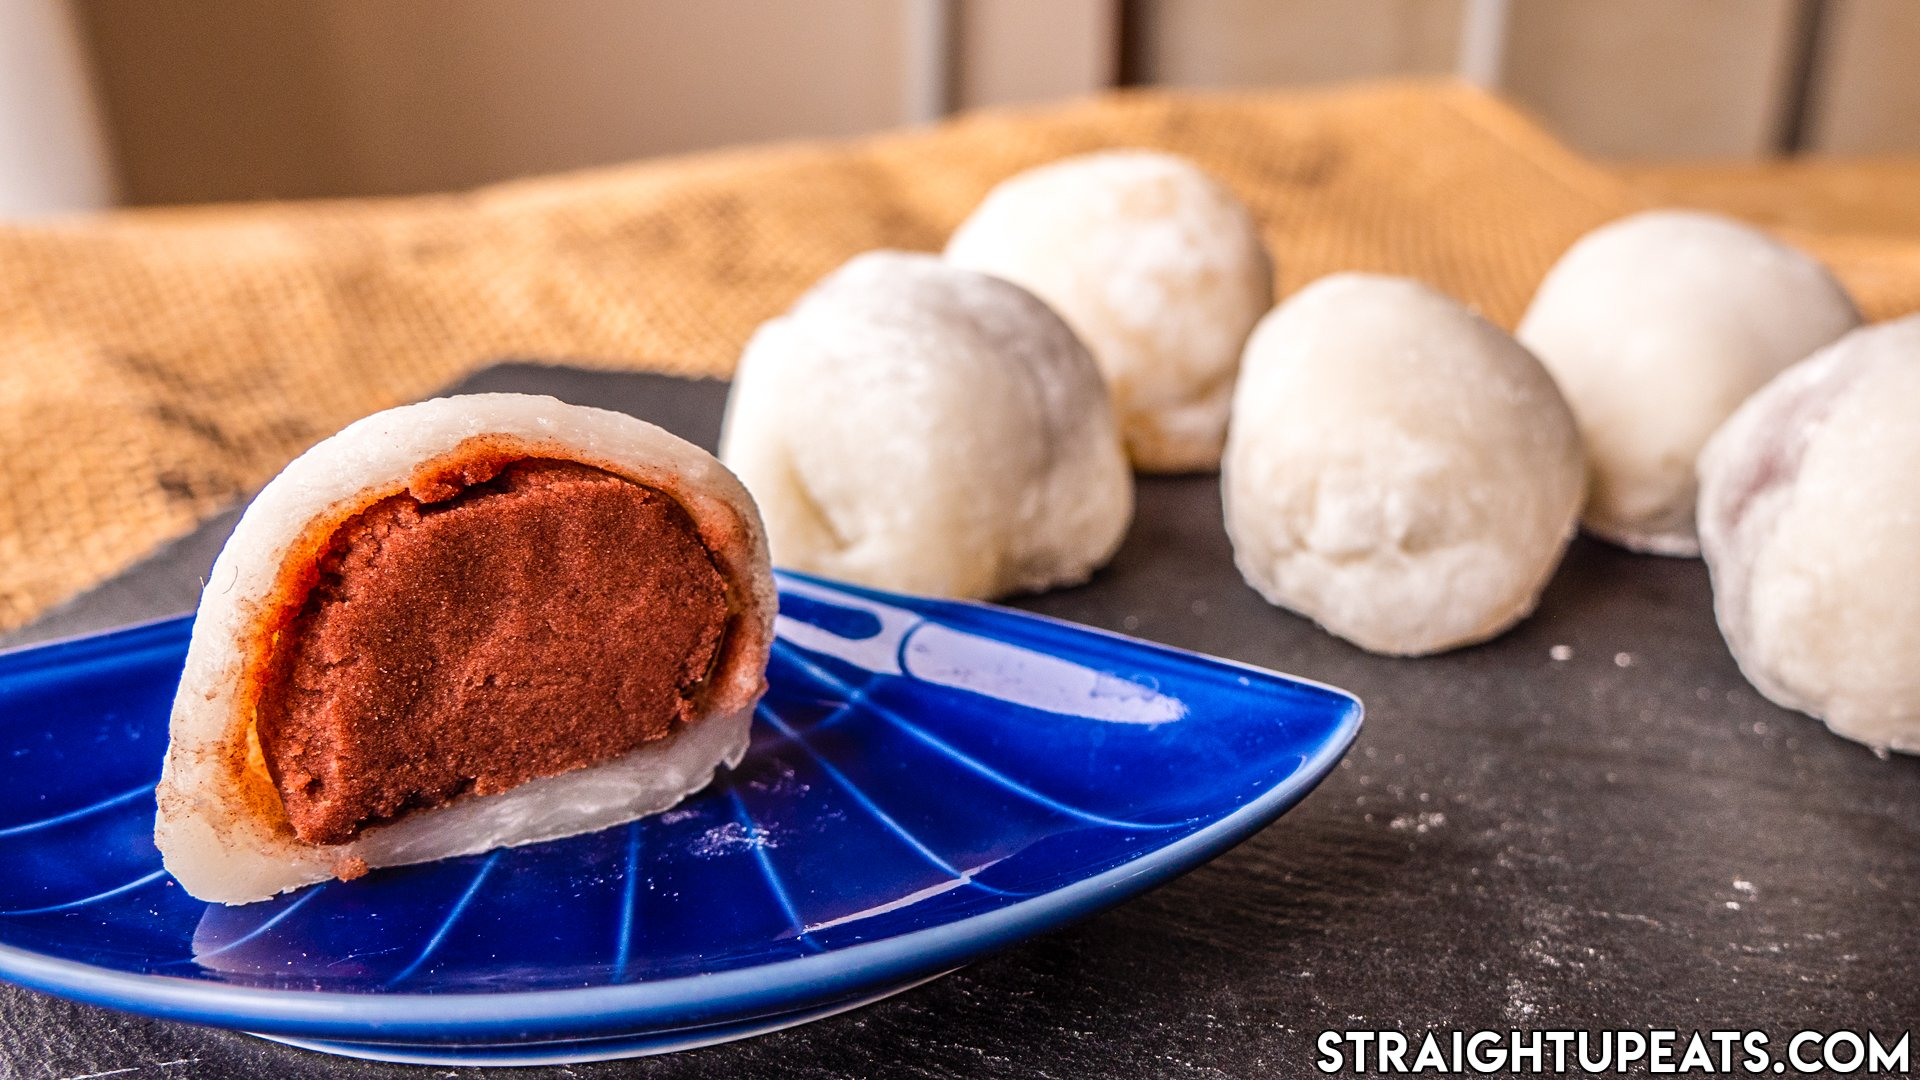 Mochi made without rice flour, filled with red bean paste